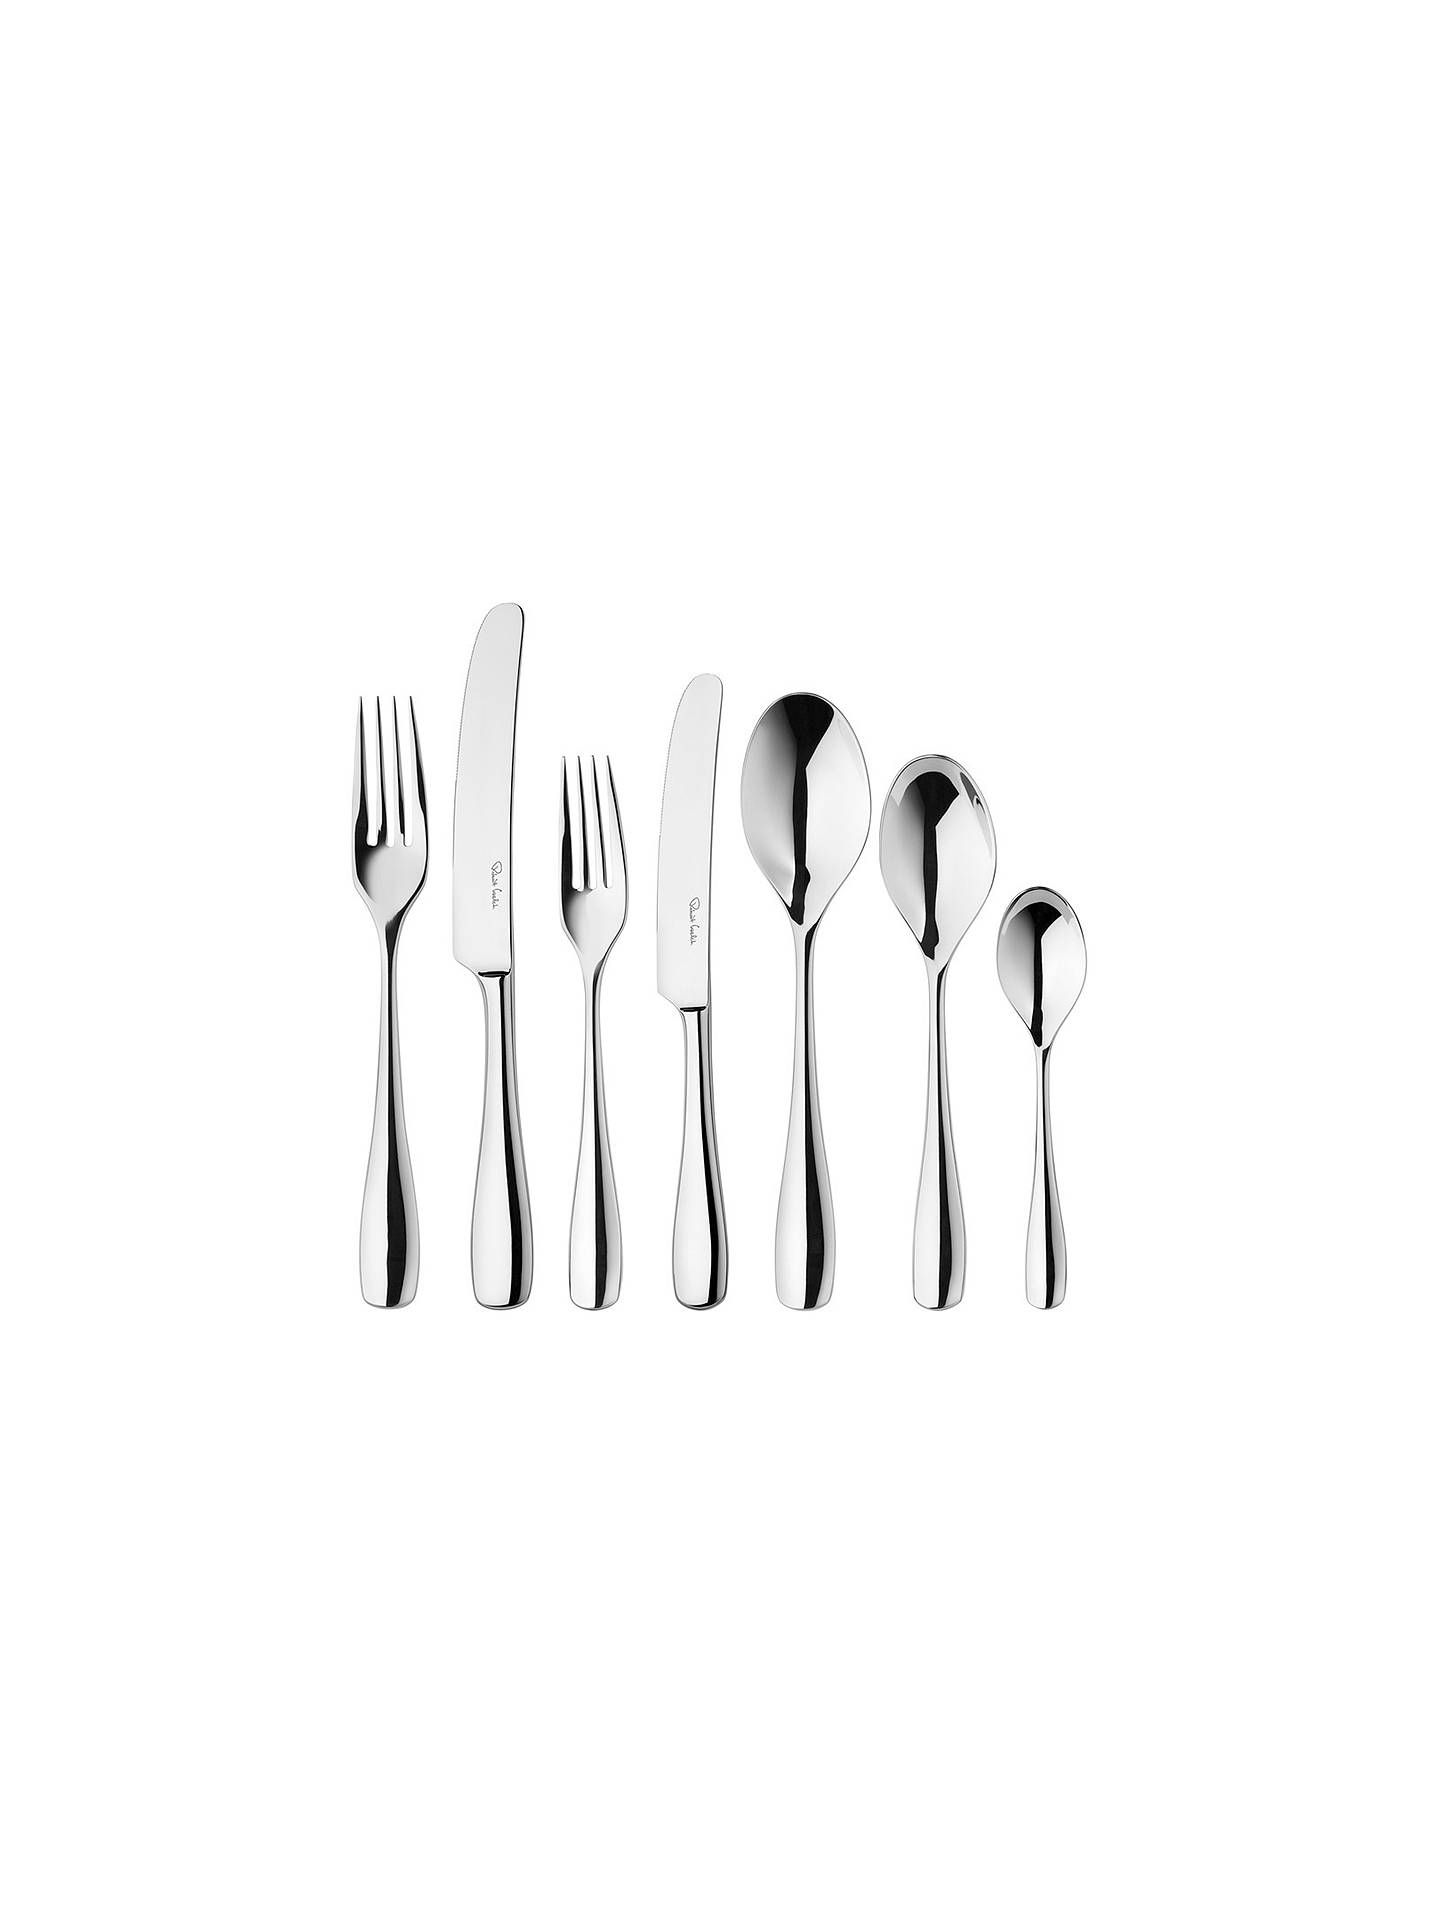 BuyRobert Welch Warwick Serving Spoon Online at johnlewis.com